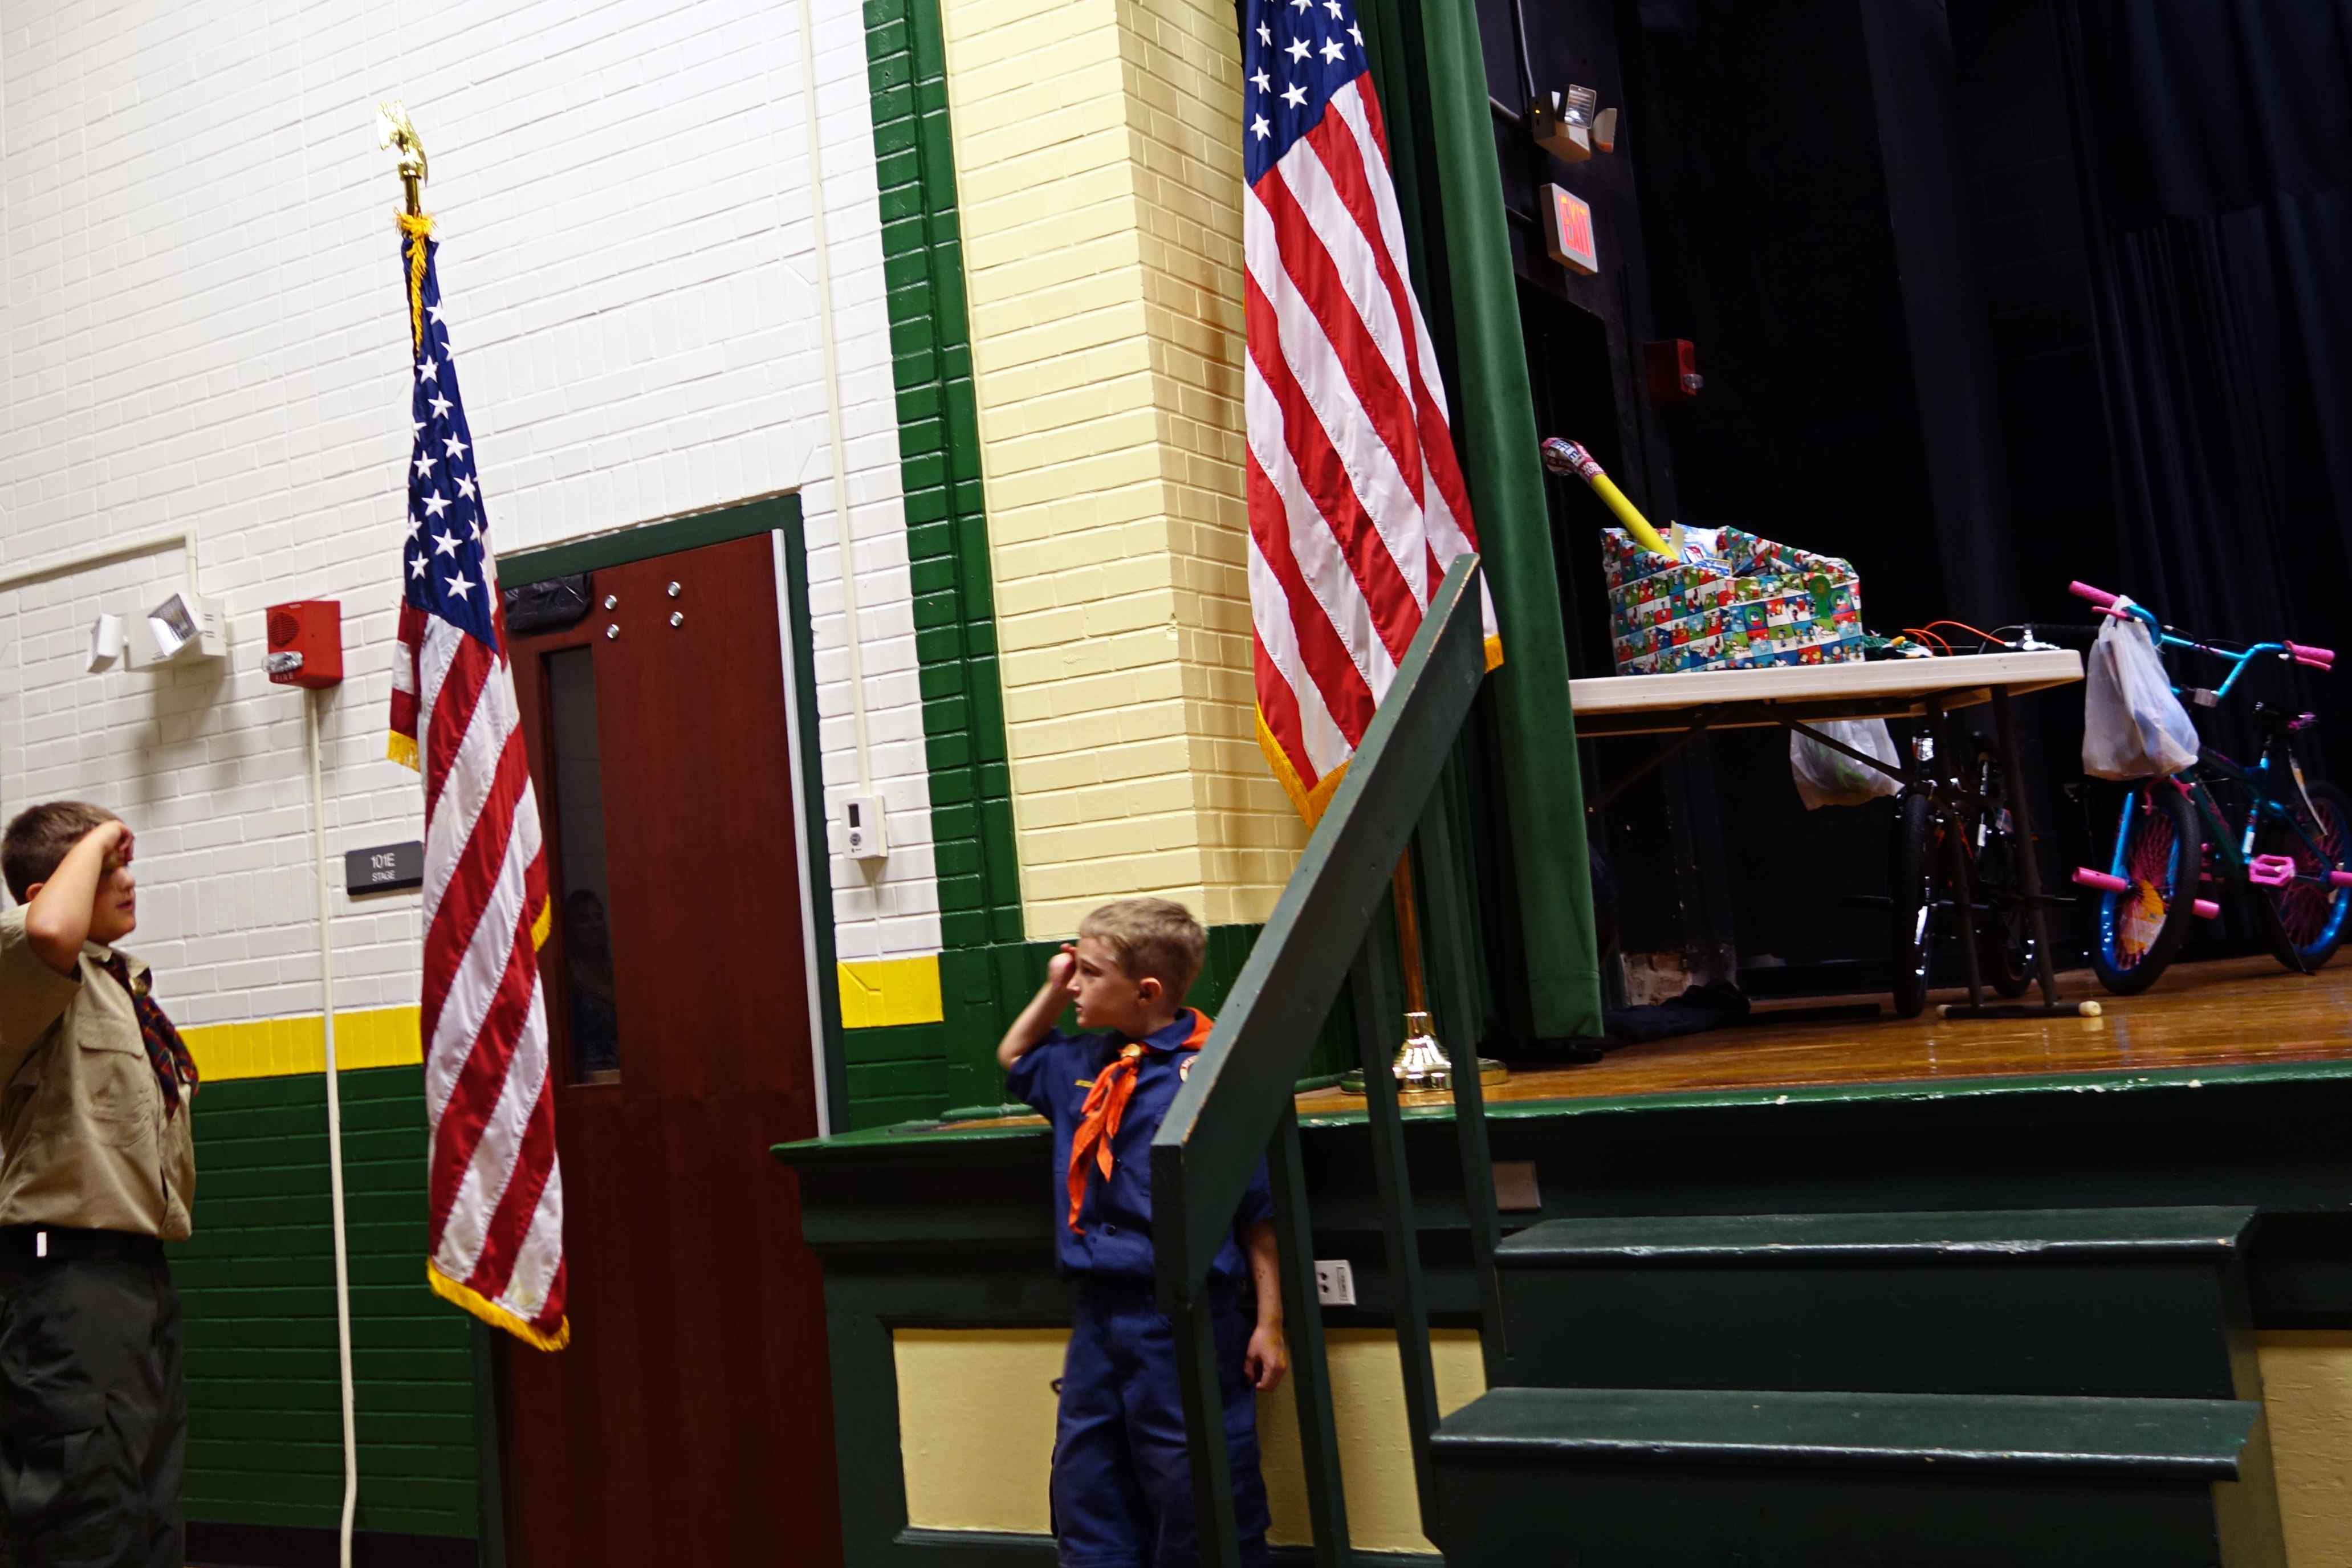 2017-11-01 3rd Grade Spelling Bee, Presentation of the Flag